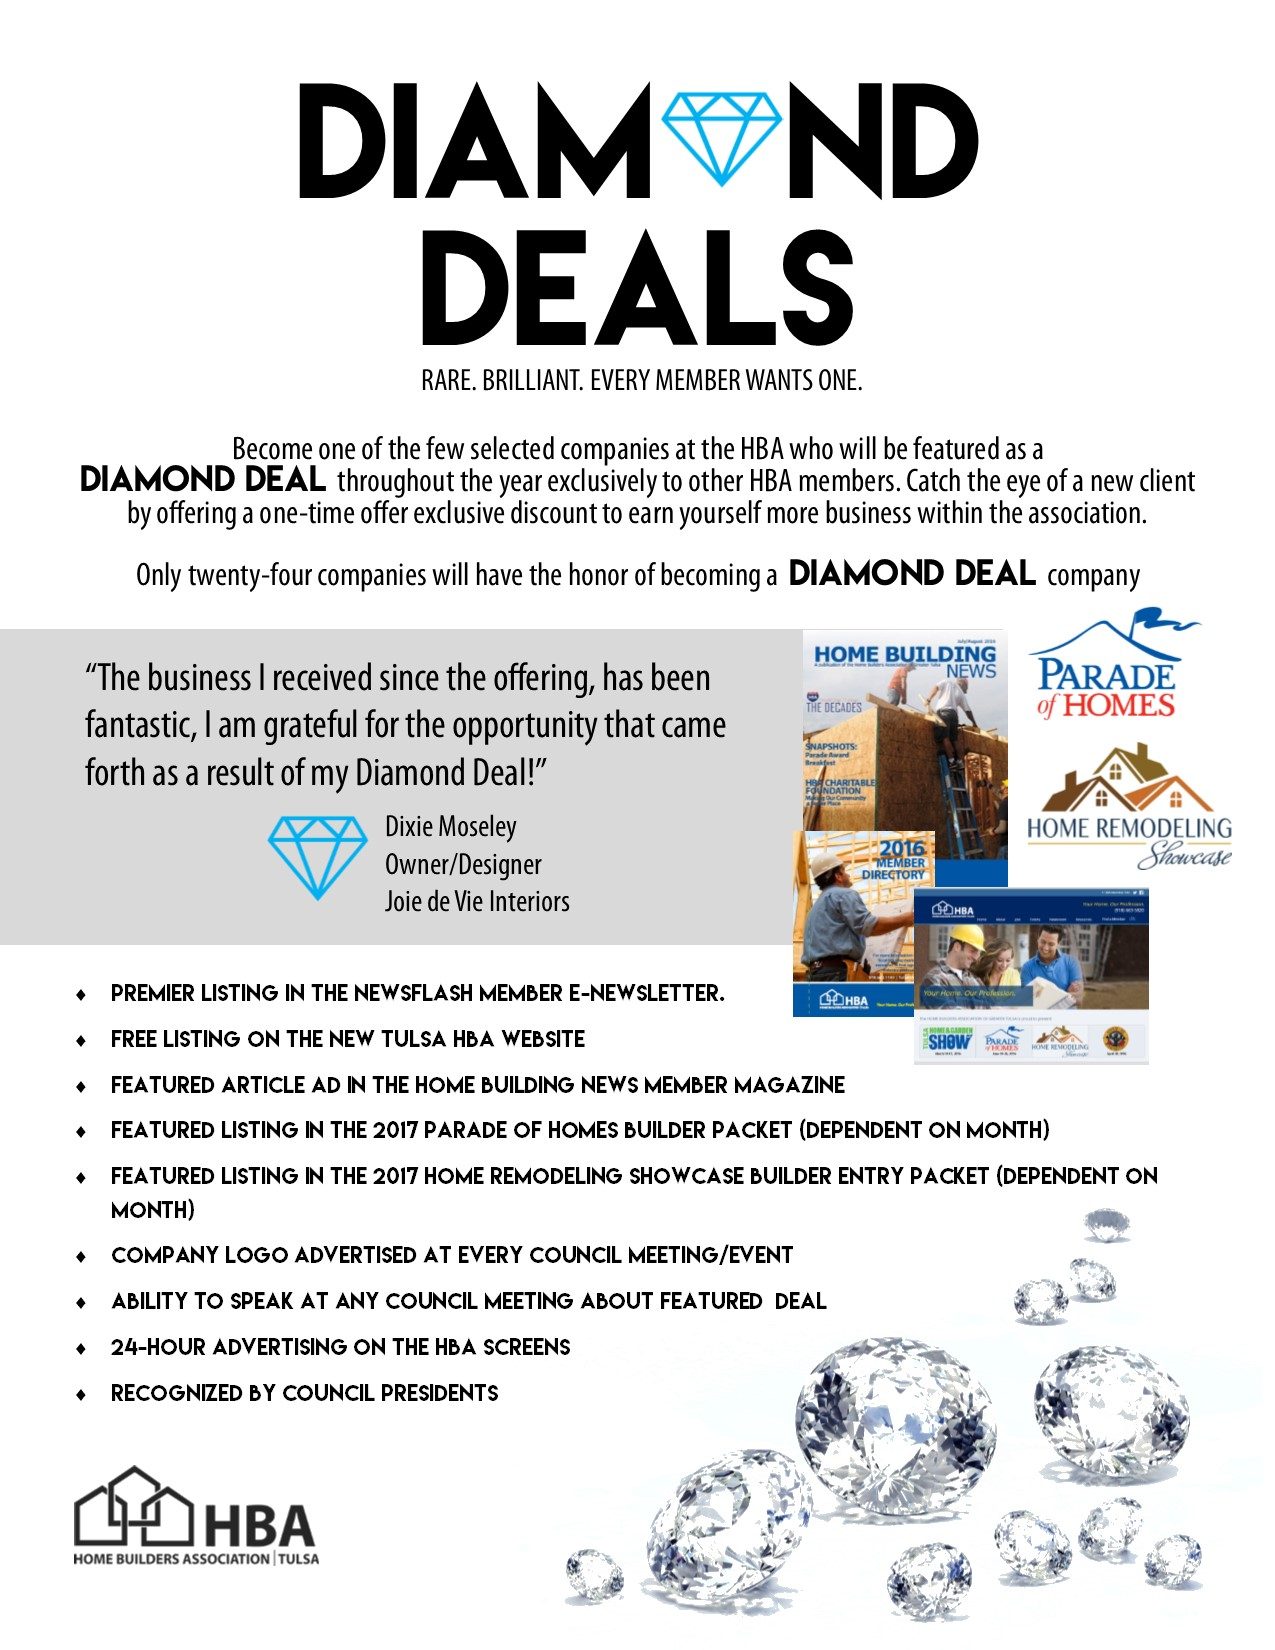 Diamond-Deals-Flyer---2018.jpg